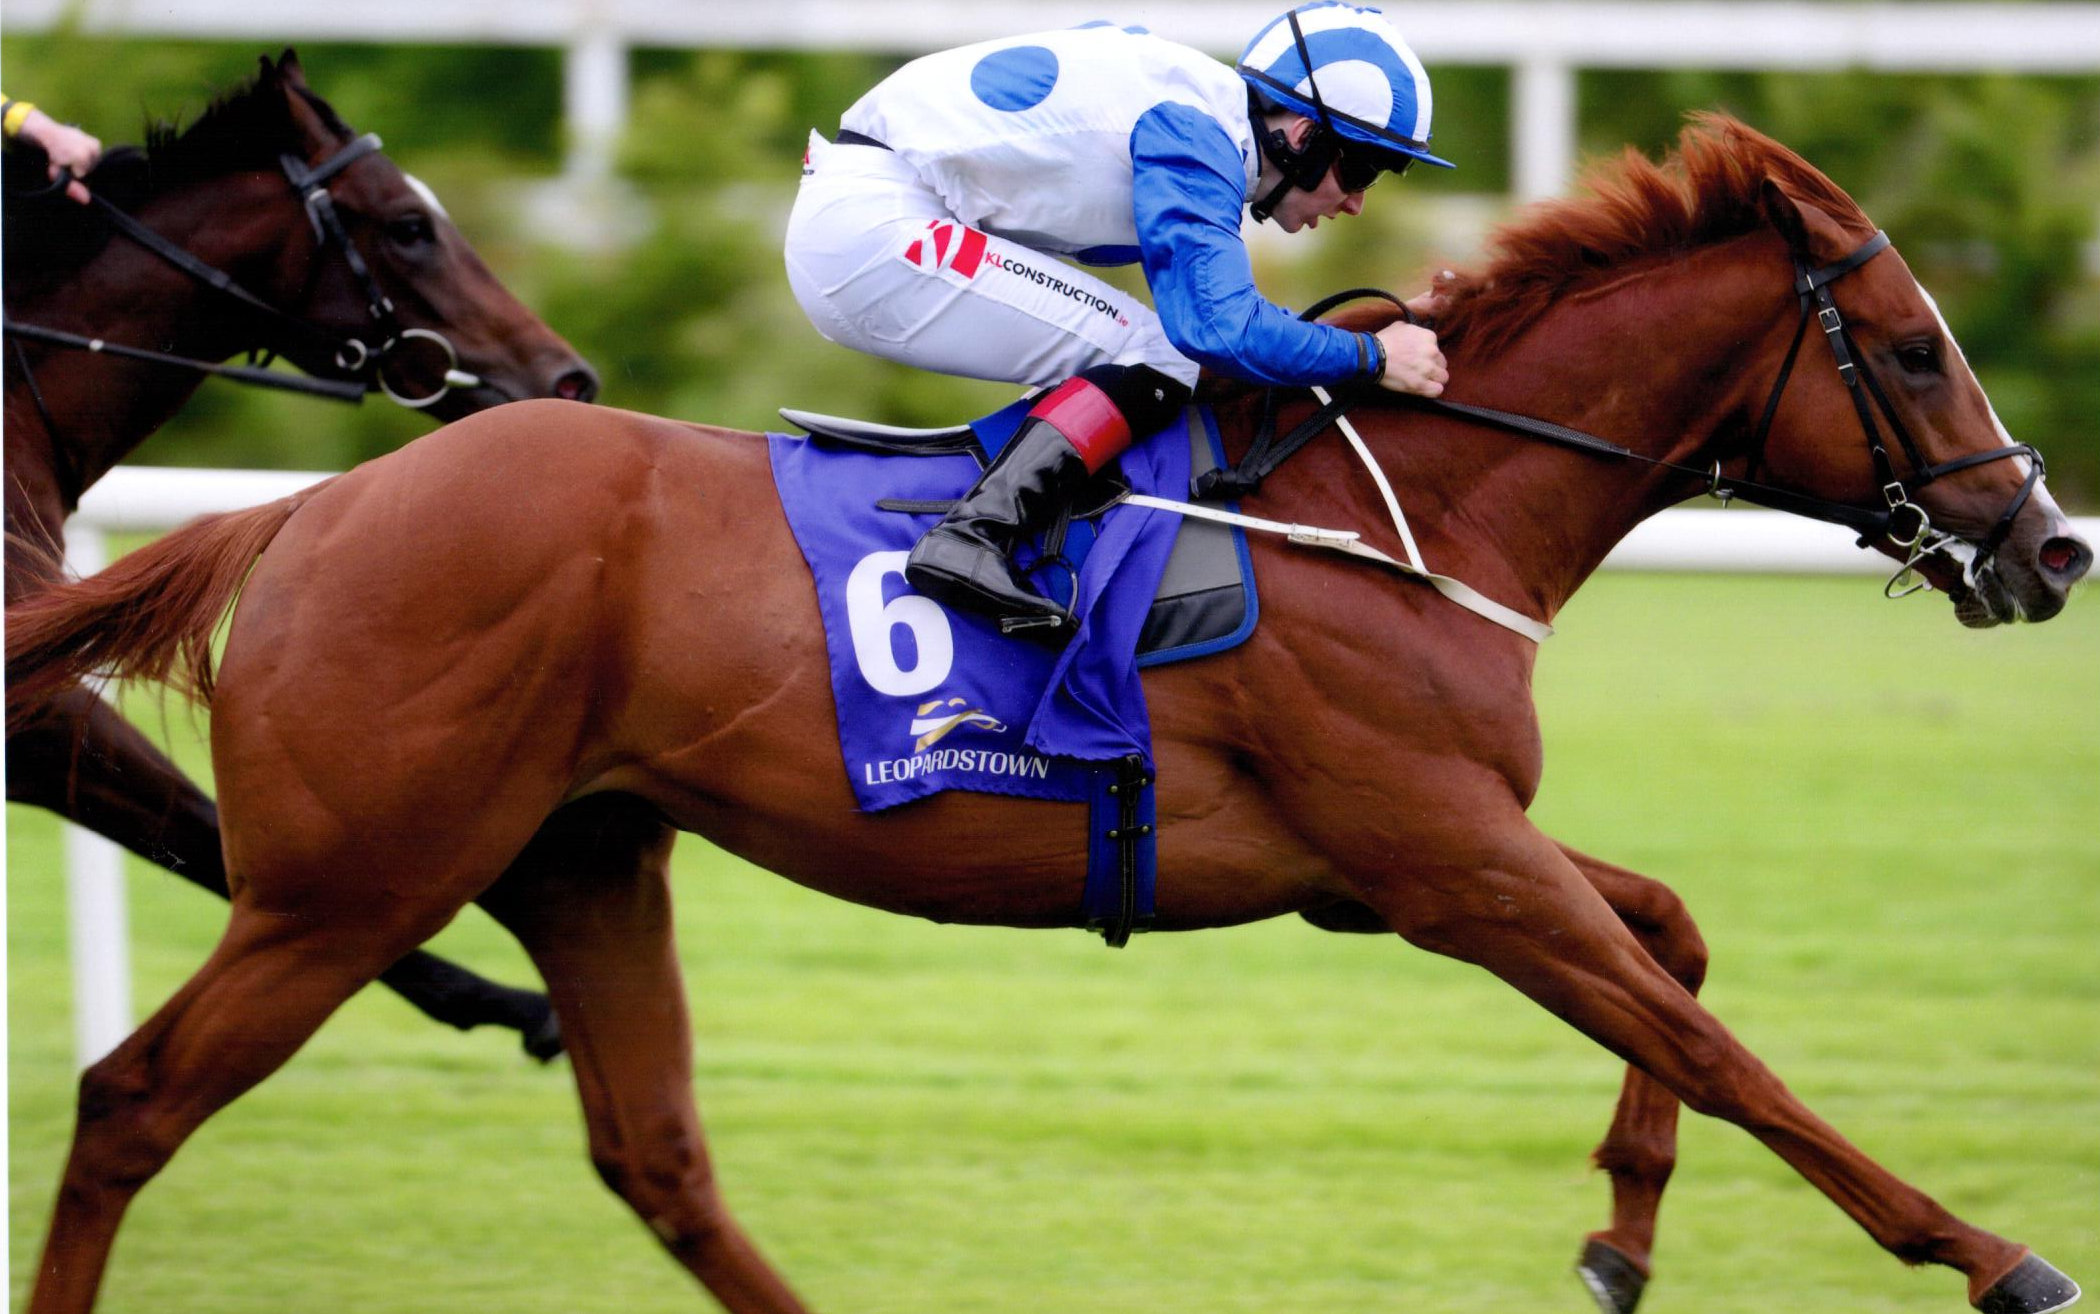 JUSTIFIER wins first time out over 7 furlongs at Leopardstown, 13th June 2019